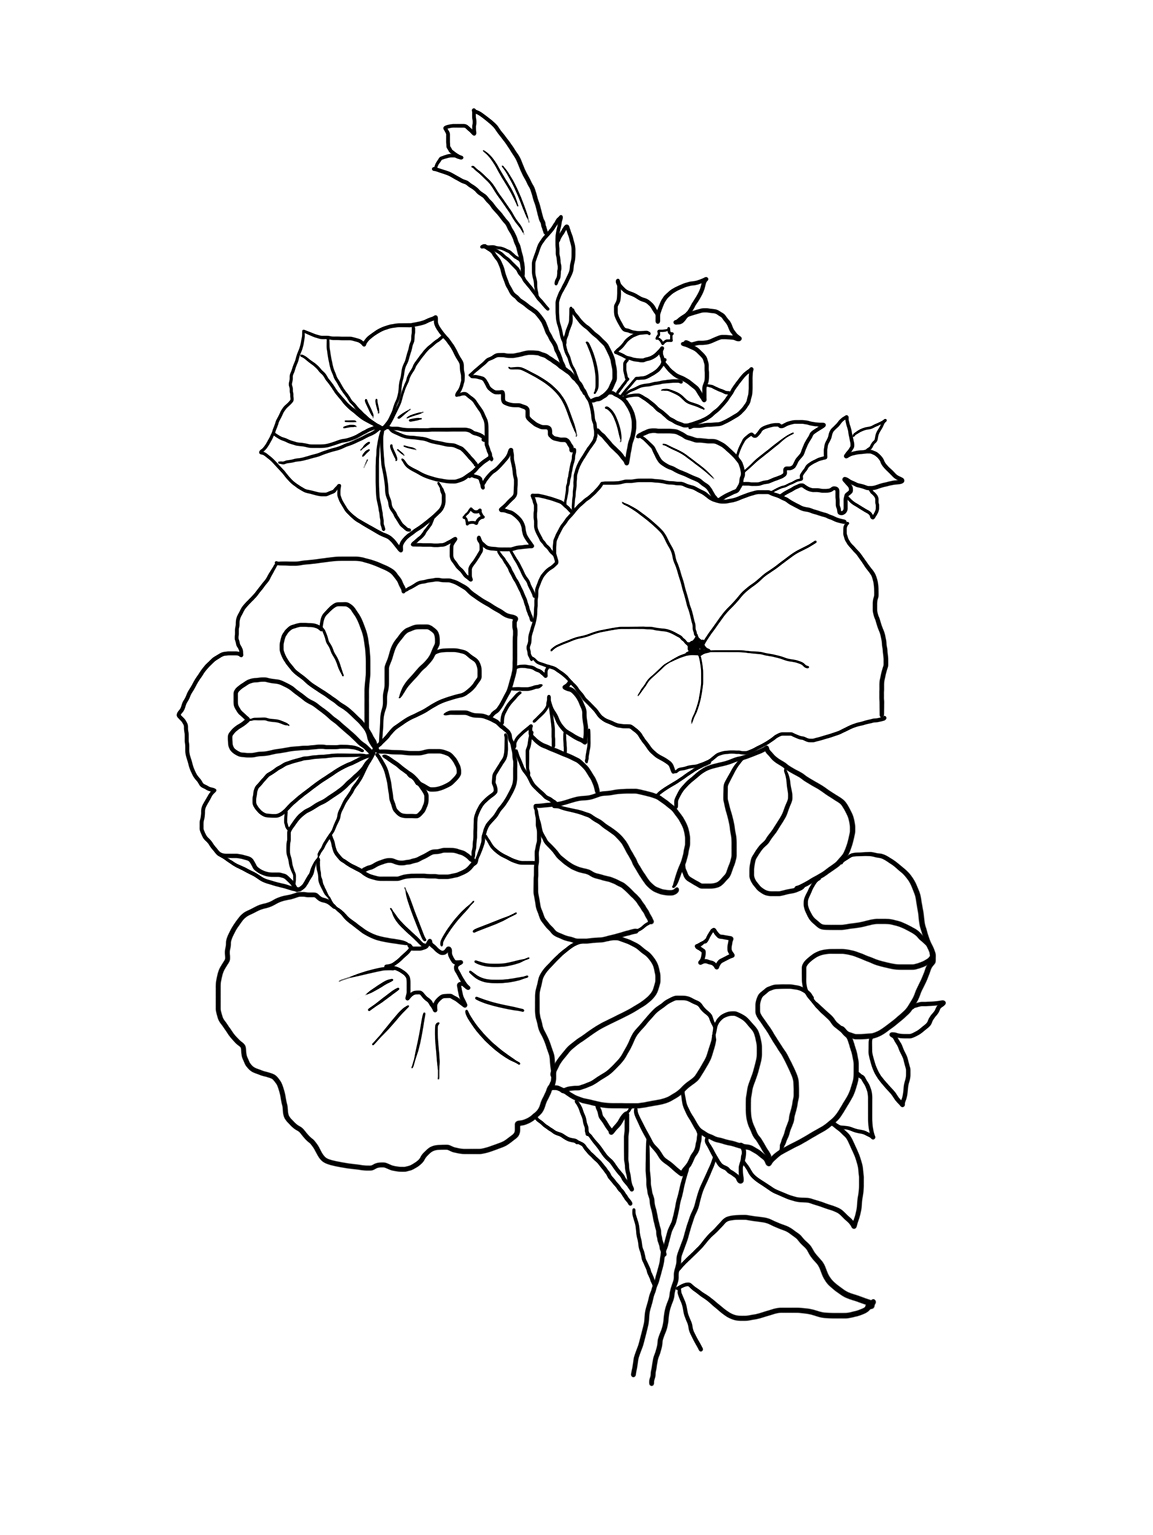 flowers outlines for colouring flower coloring pages outlines colouring flowers for